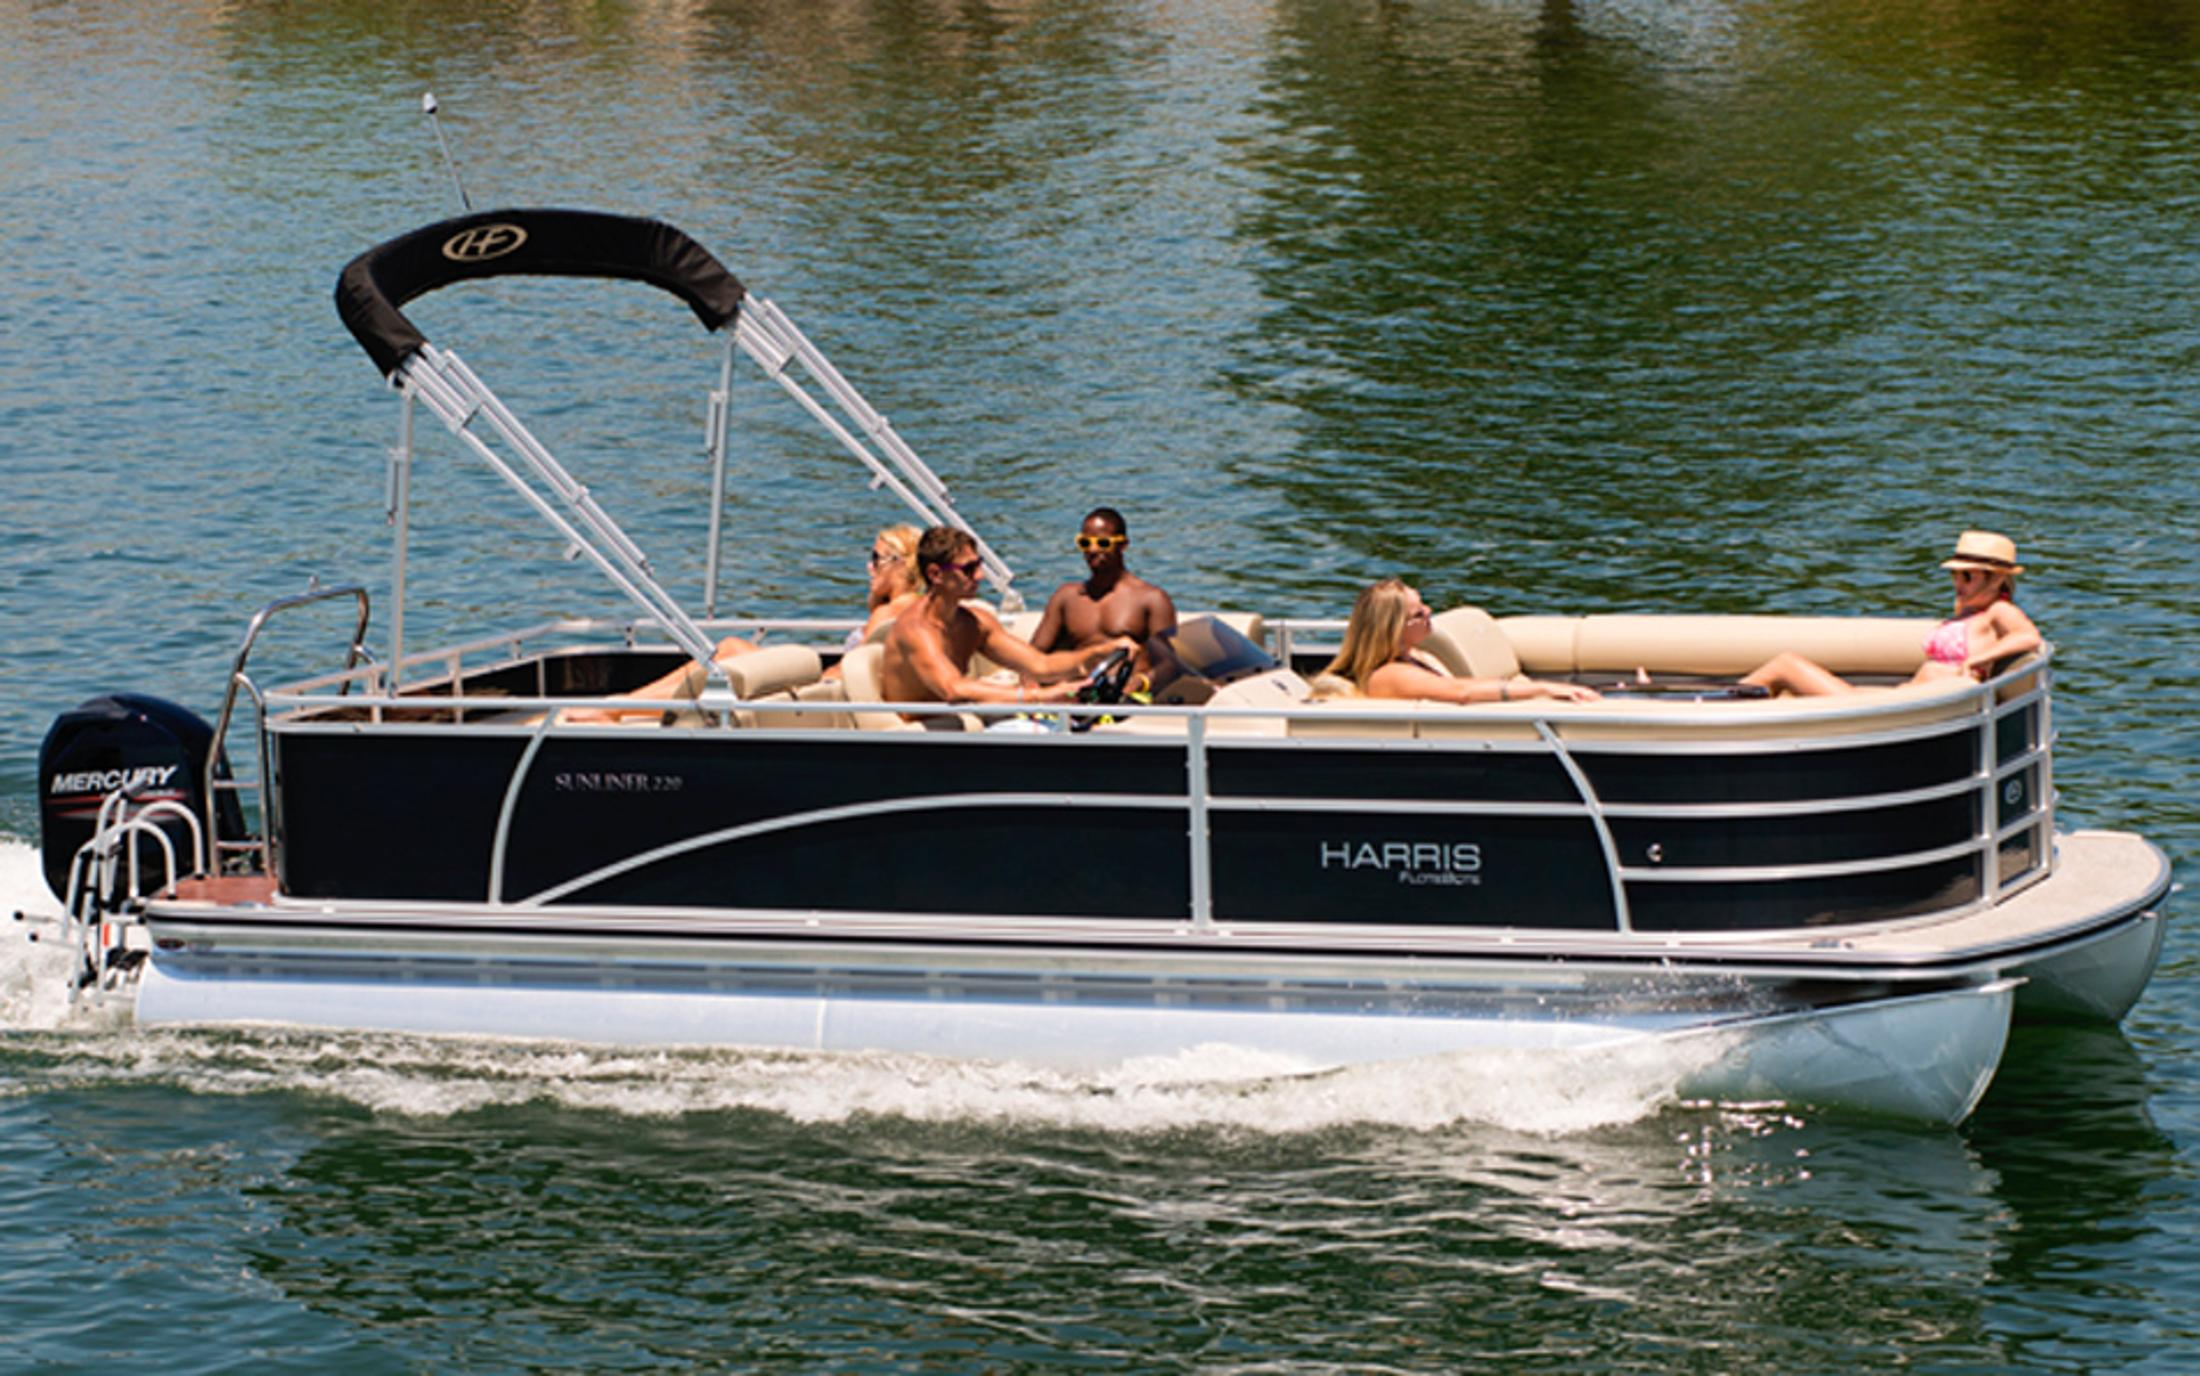 2013 Harris Flotebote Sunliner 220 in Manitou Beach, Michigan